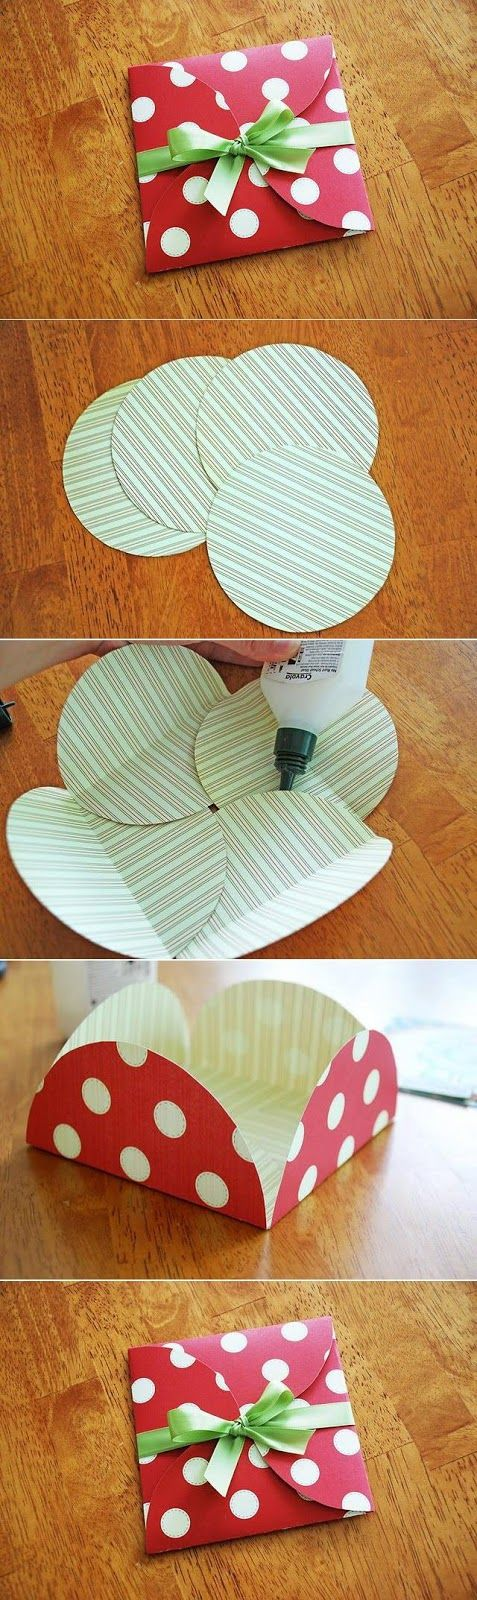 Make a Simple Beautiful Envelope                                                                                                                                                     More: